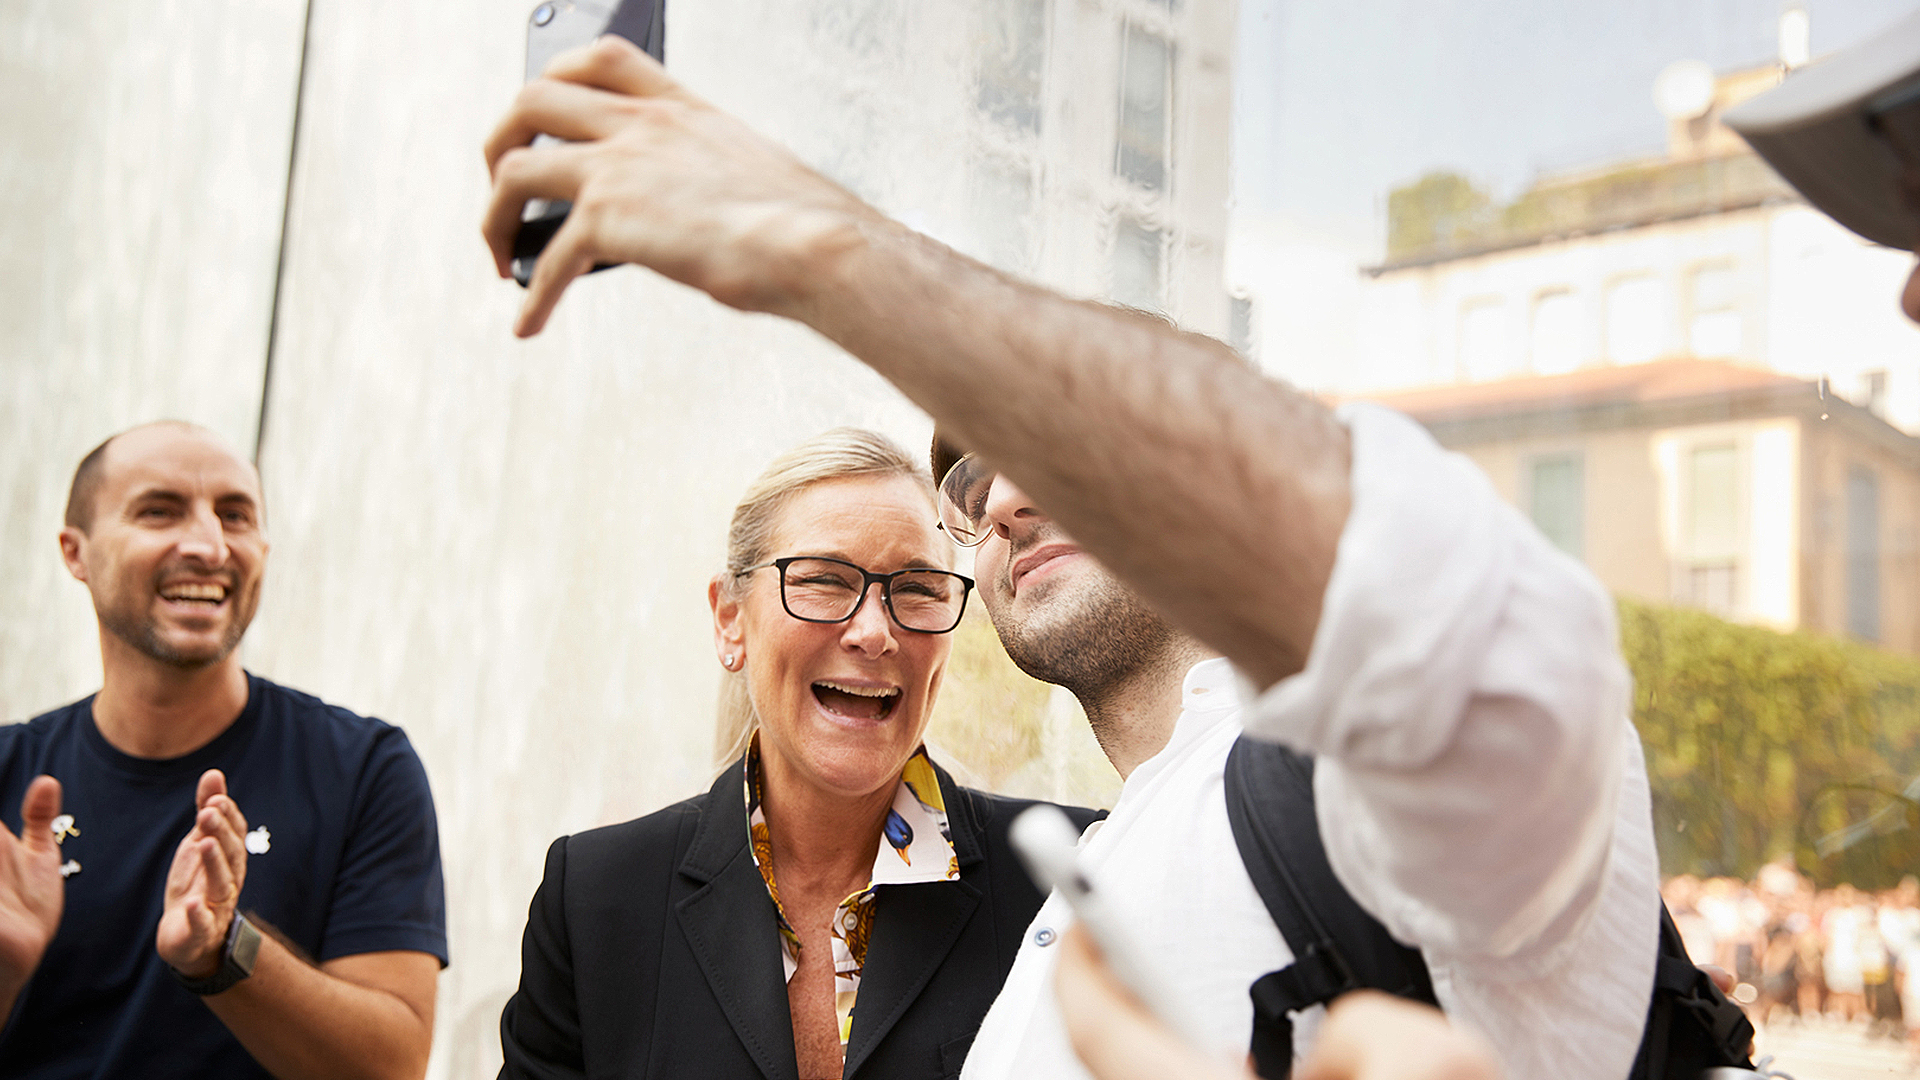 Angela Ahrendts details plans for life after Apple at Ralph Lauren fashion show appearance